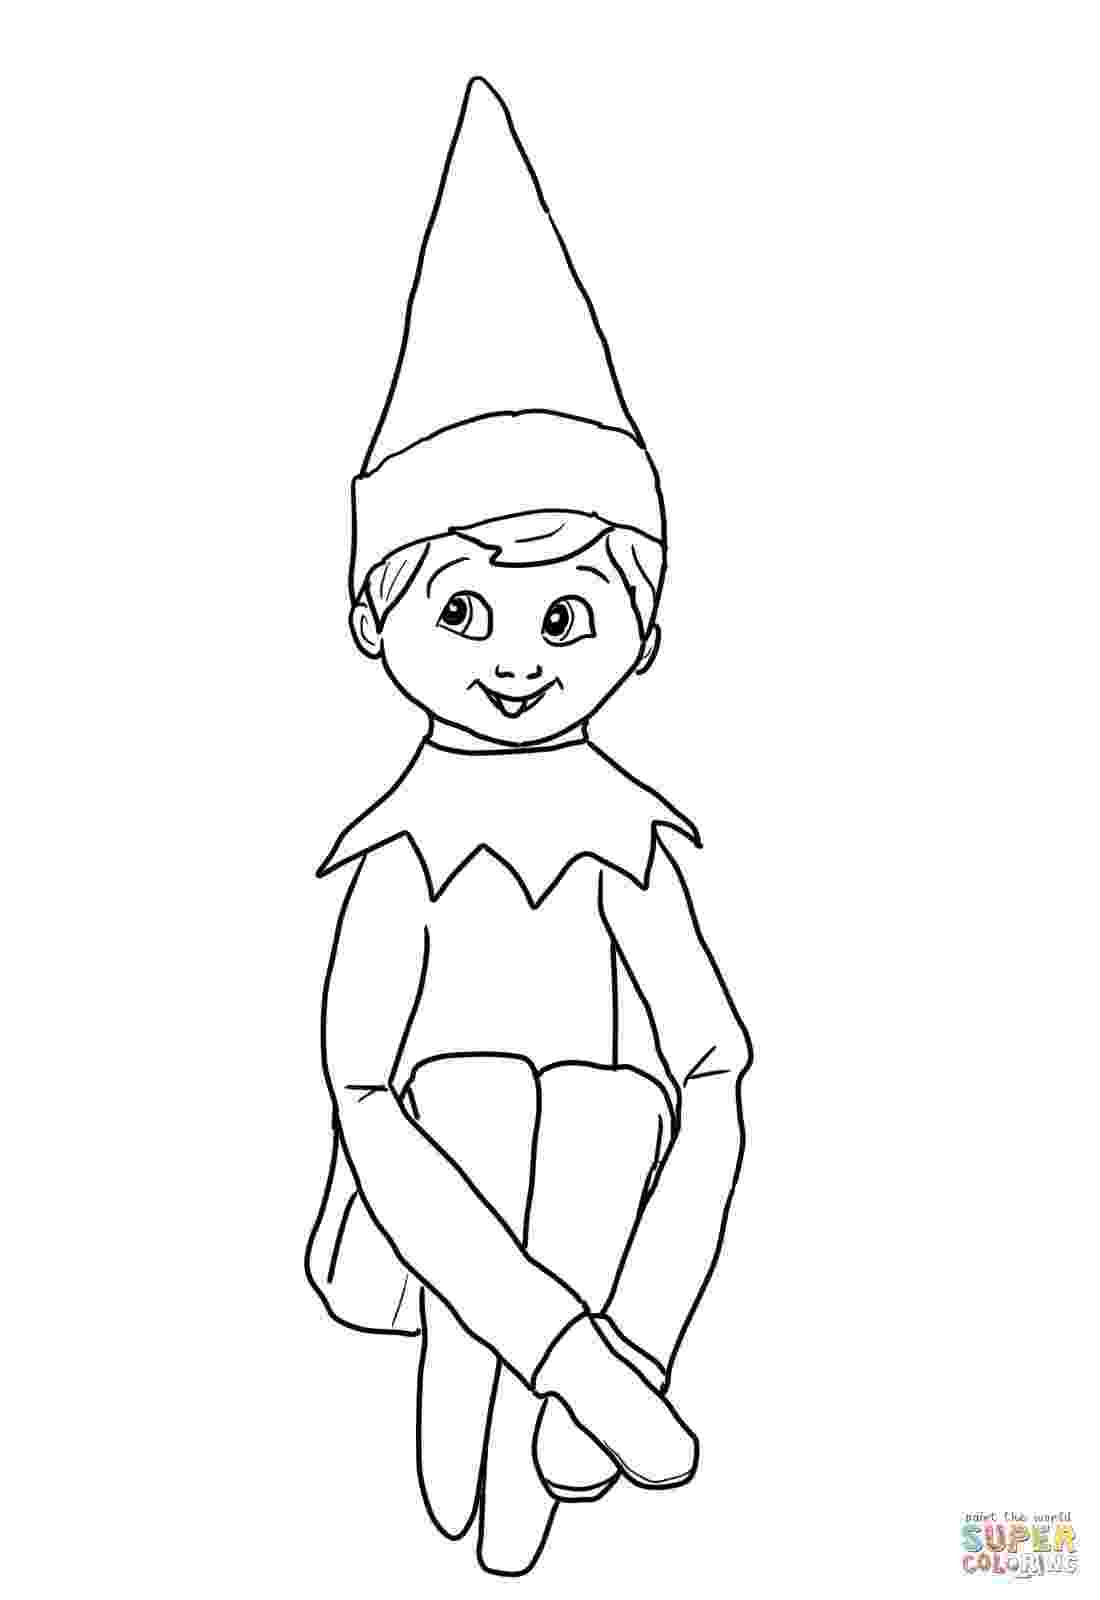 elf on the shelf coloring book elves on the shelf coloring page free printable coloring the shelf coloring elf on book